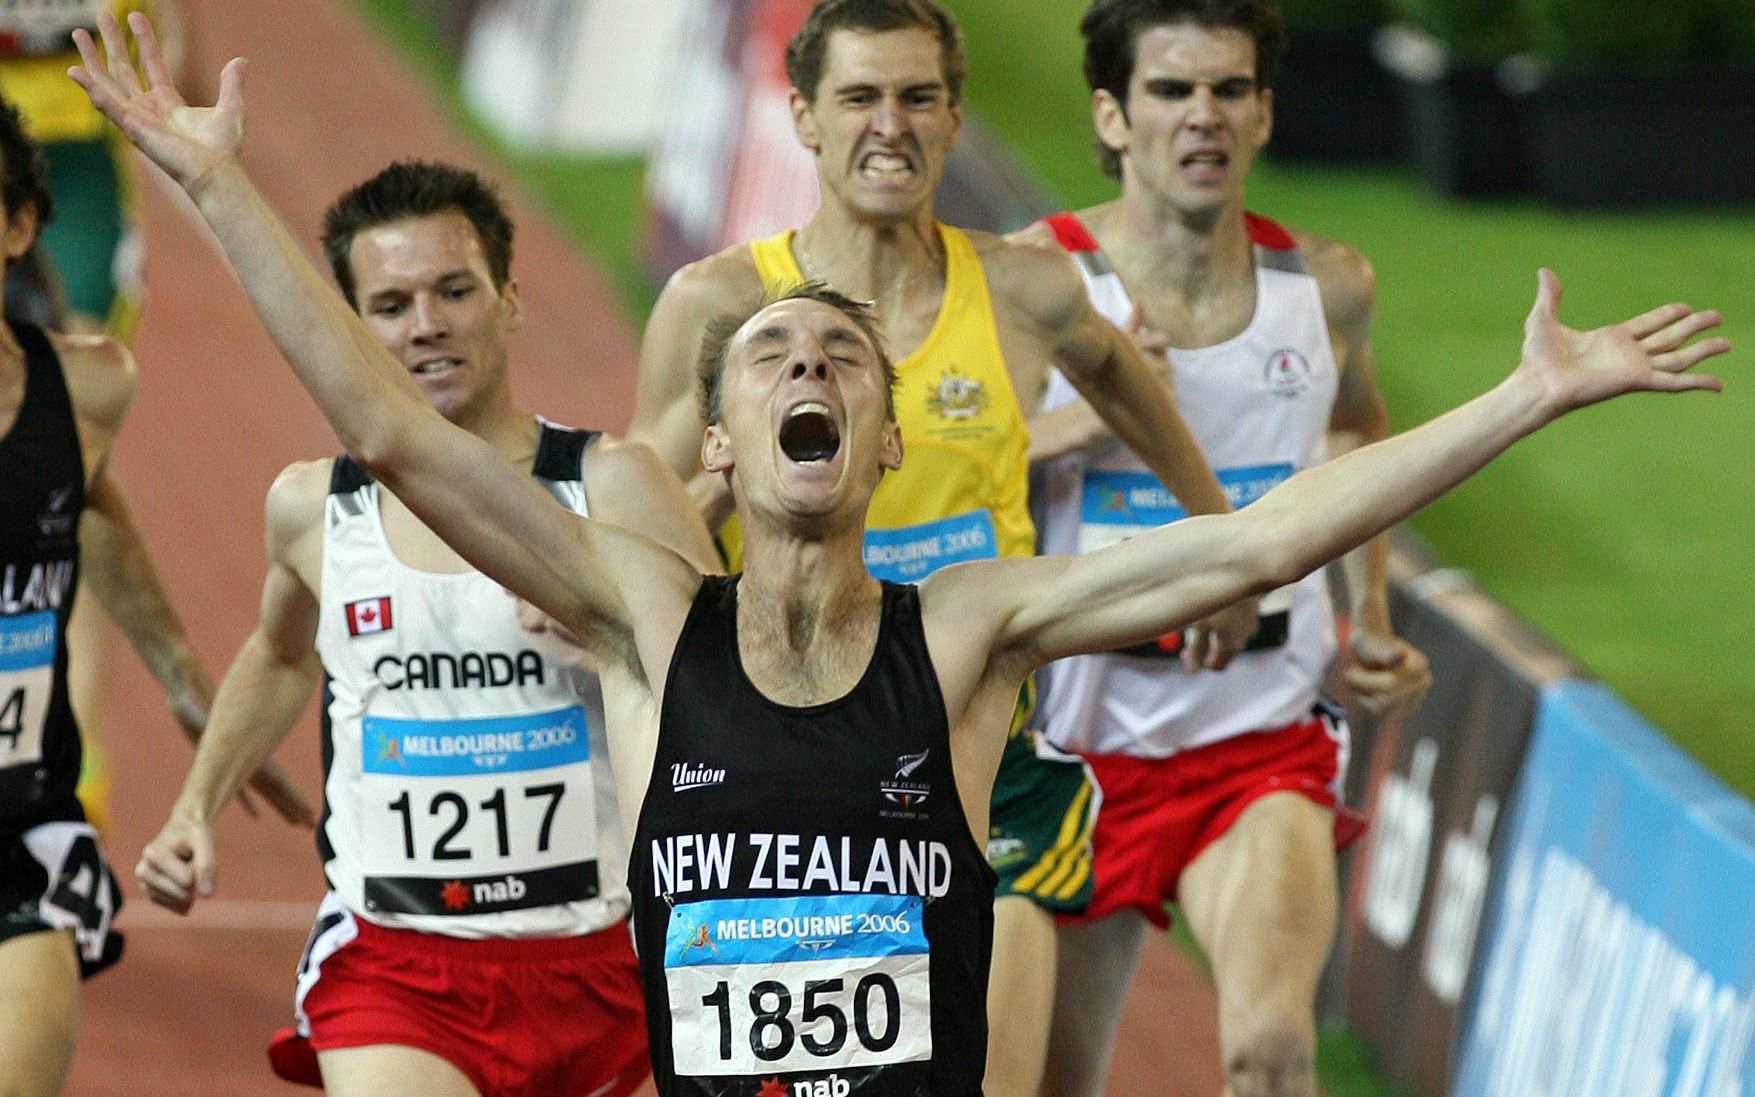 Nick Willis wins Commonwealth Games 1500m gold in Melbourne 2006.